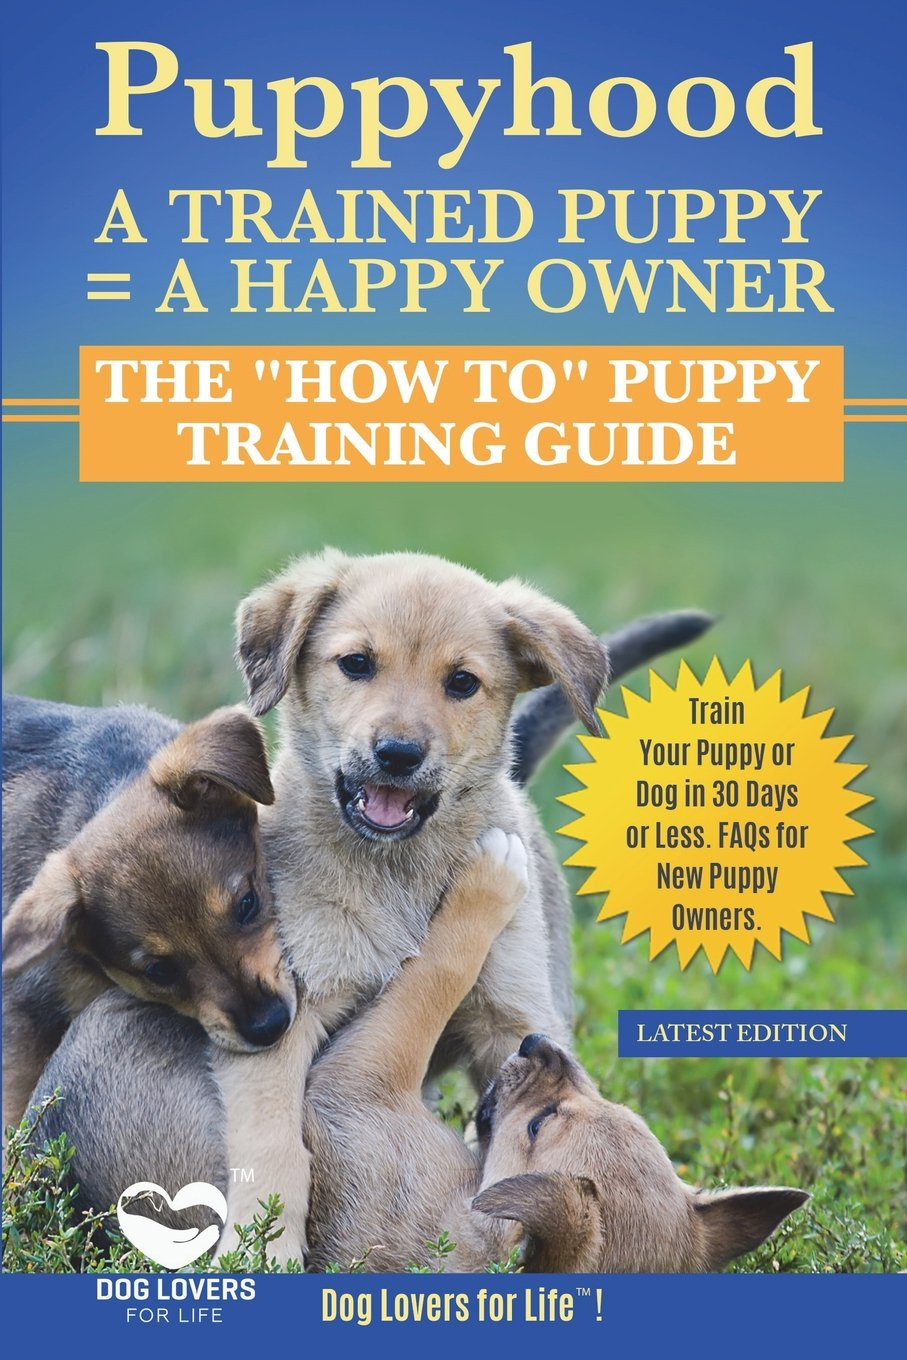 """Read Online Puppyhood:  A Trained Puppy = A Happy Owner: The """"How To"""" Puppy Training Guide to Train Your Puppy in 30 Days or Less.  FAQs for New Puppy Owners PDF"""